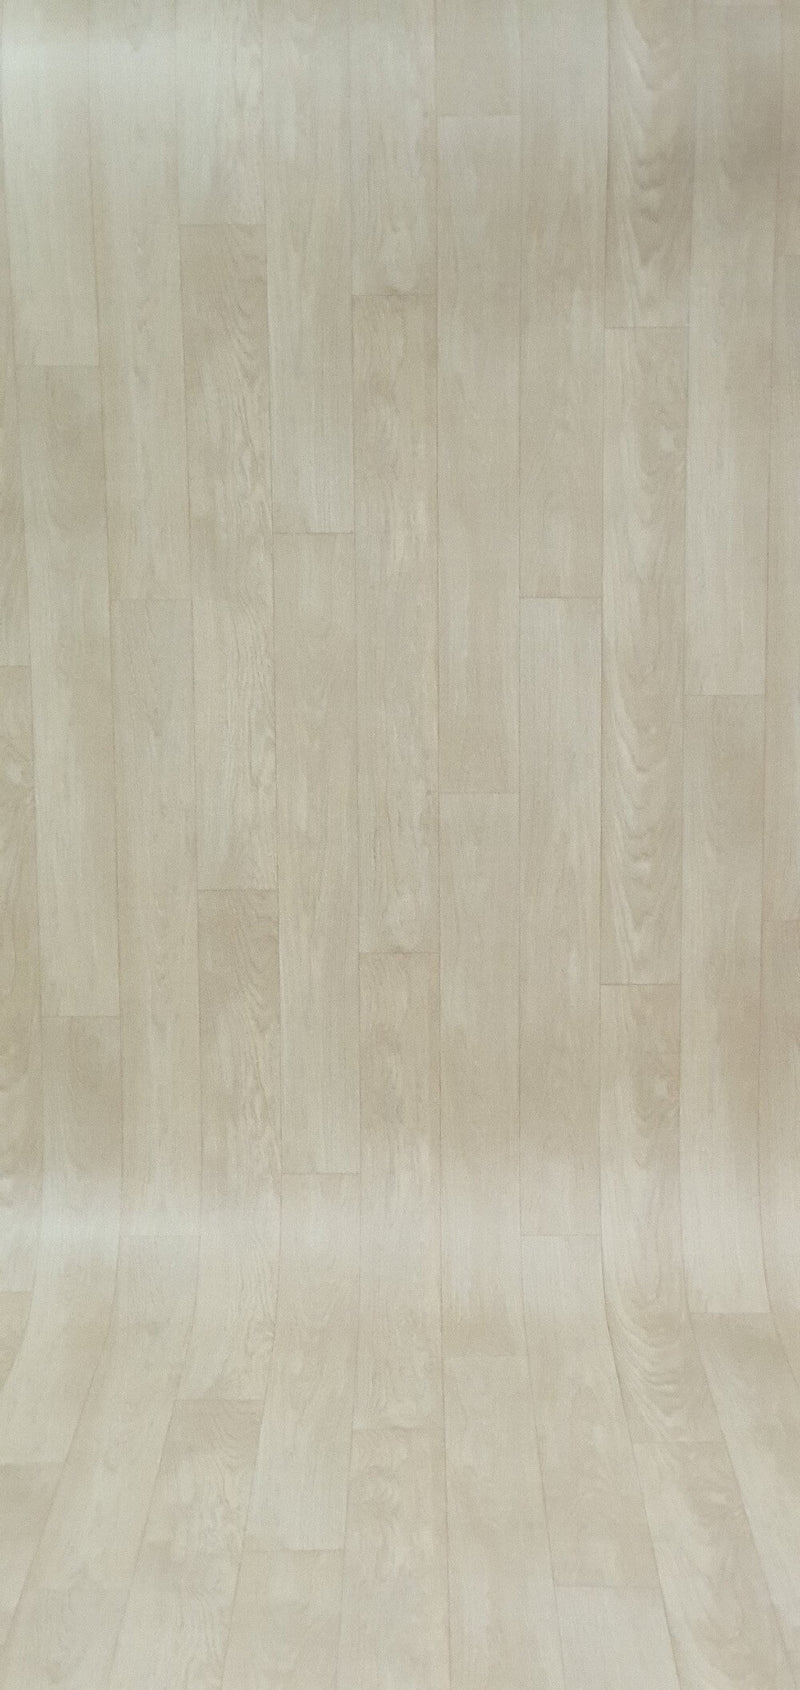 Belise 752 Vinyl Lino Flooring 4m Width Square Metre Price is £8.95 - Decoridea.co.uk